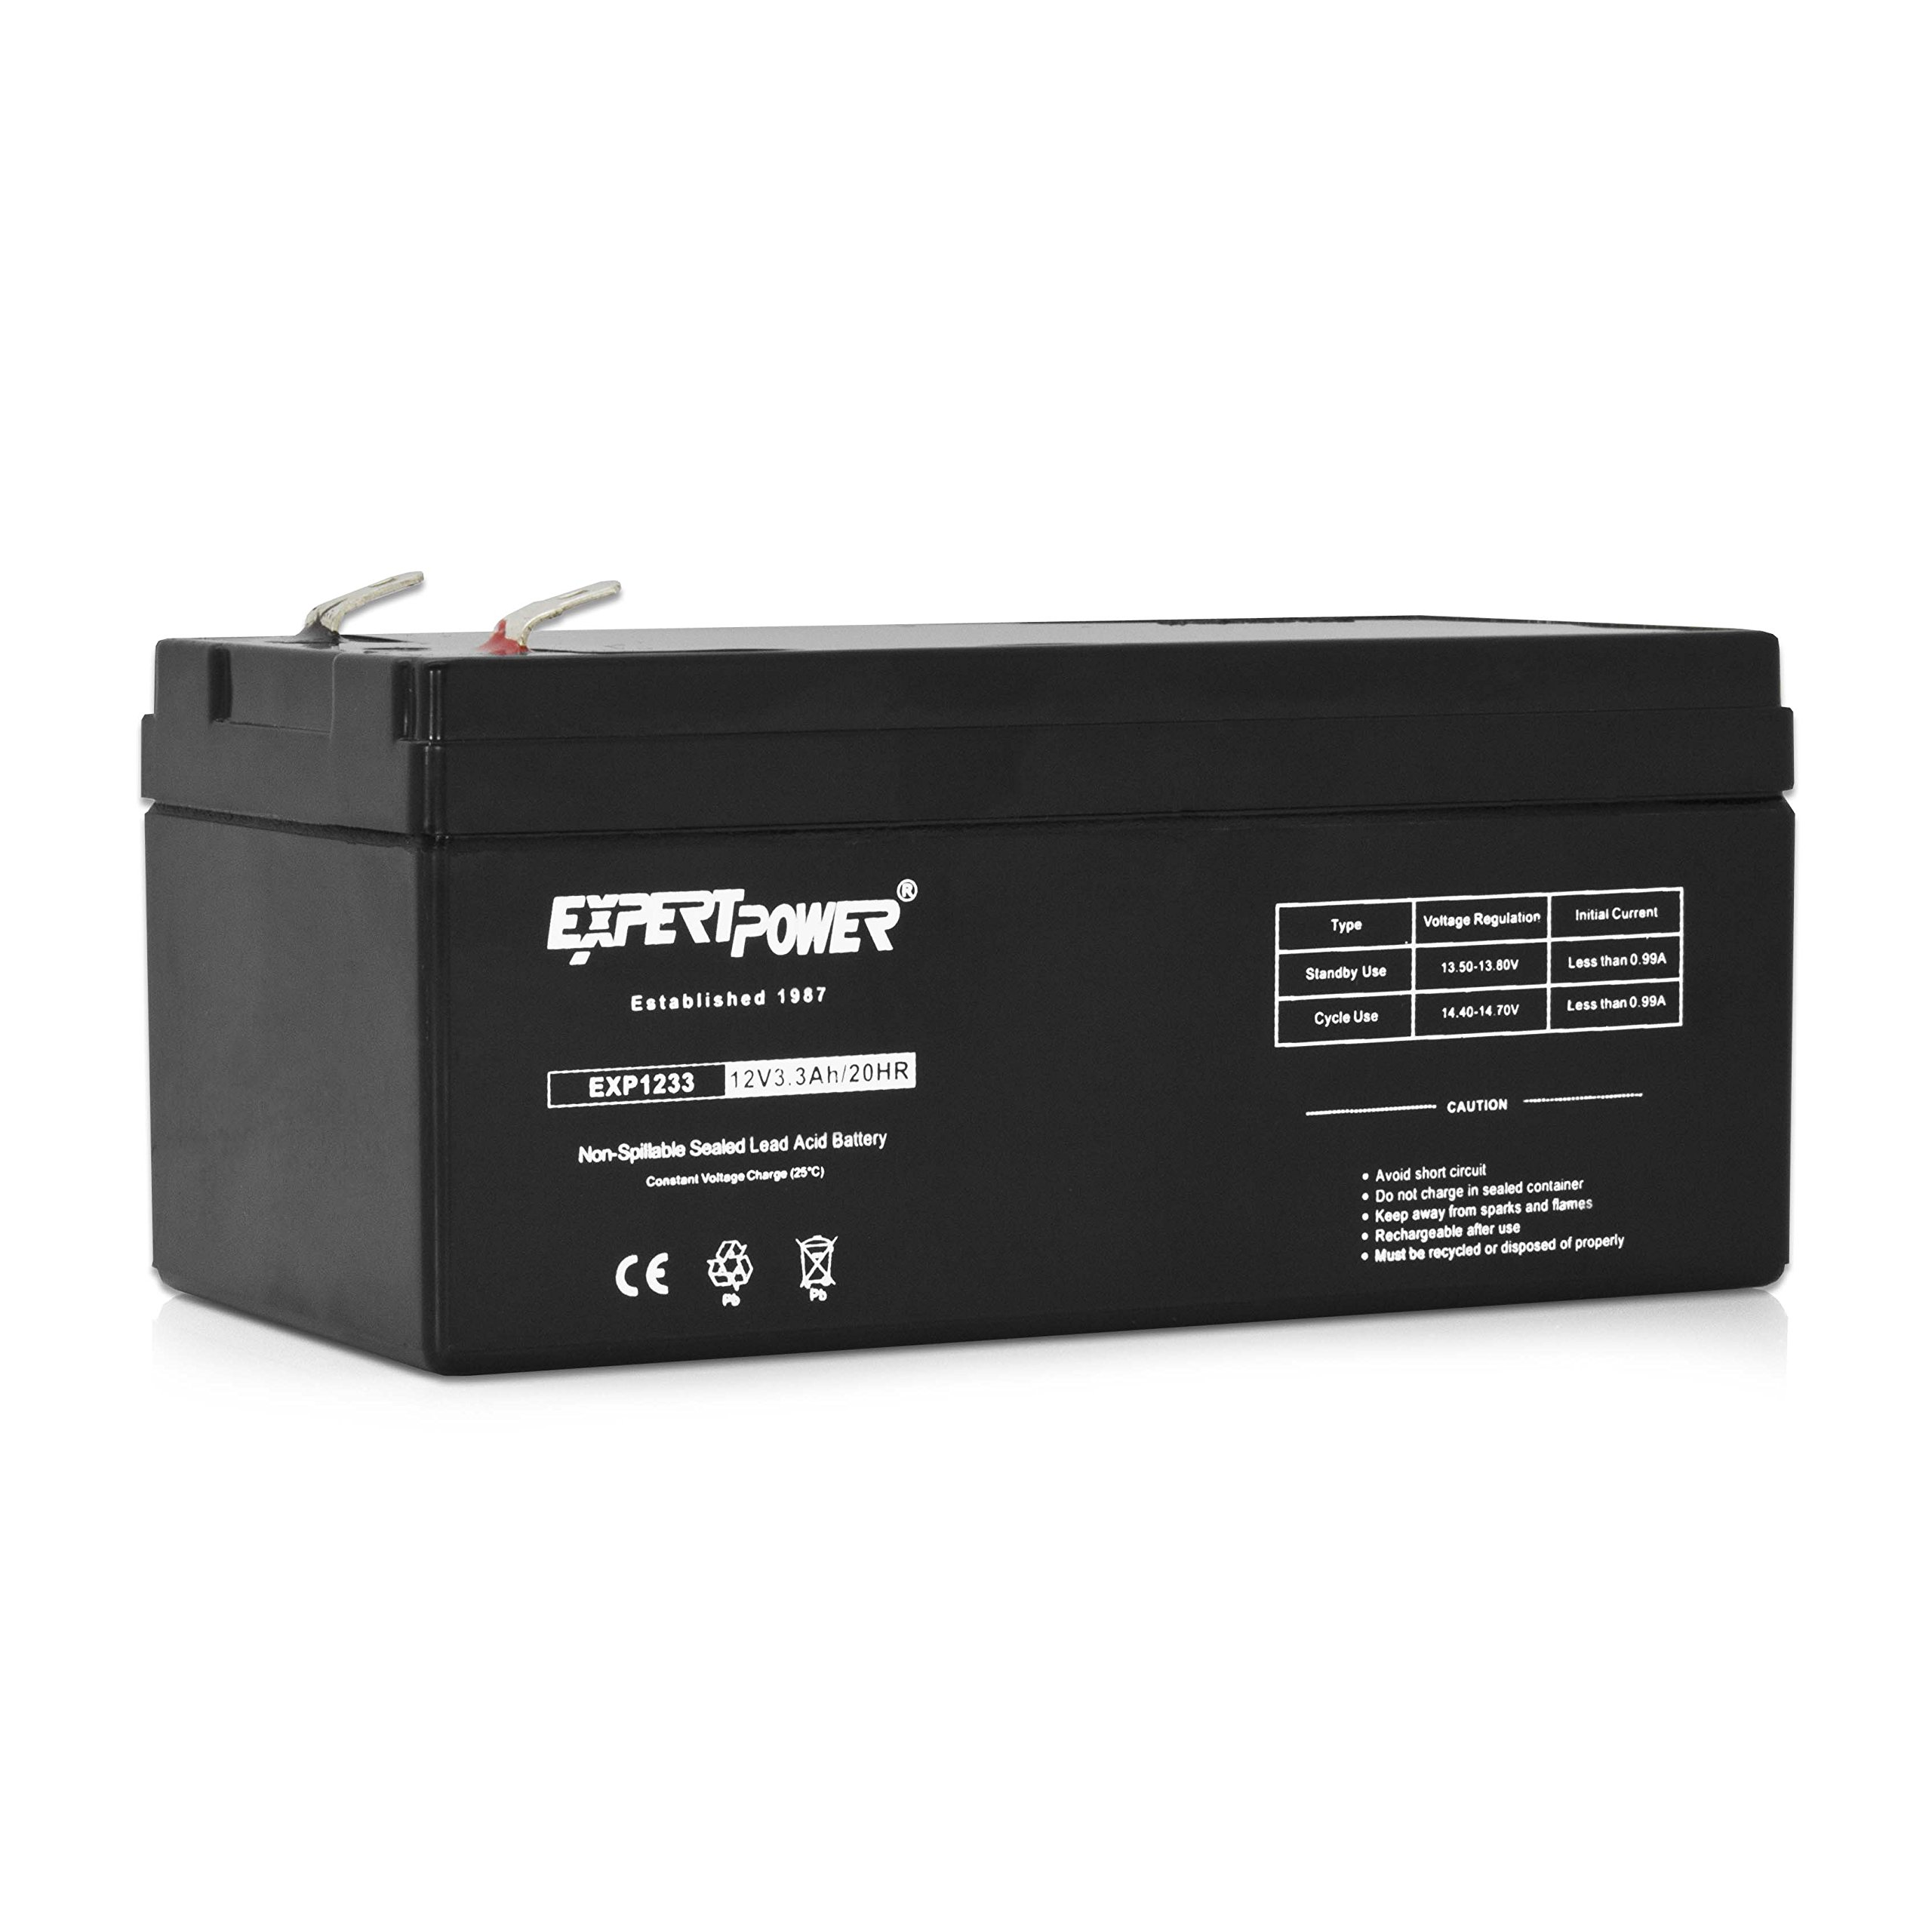 ExpertPower 12v 3.3ah Rechargeable Sealed Lead Acid Battery    Replaces RBC35 WP3-12 BP3-12 BP3.6-12 CF12V2.6 CFM12V3 CP1232